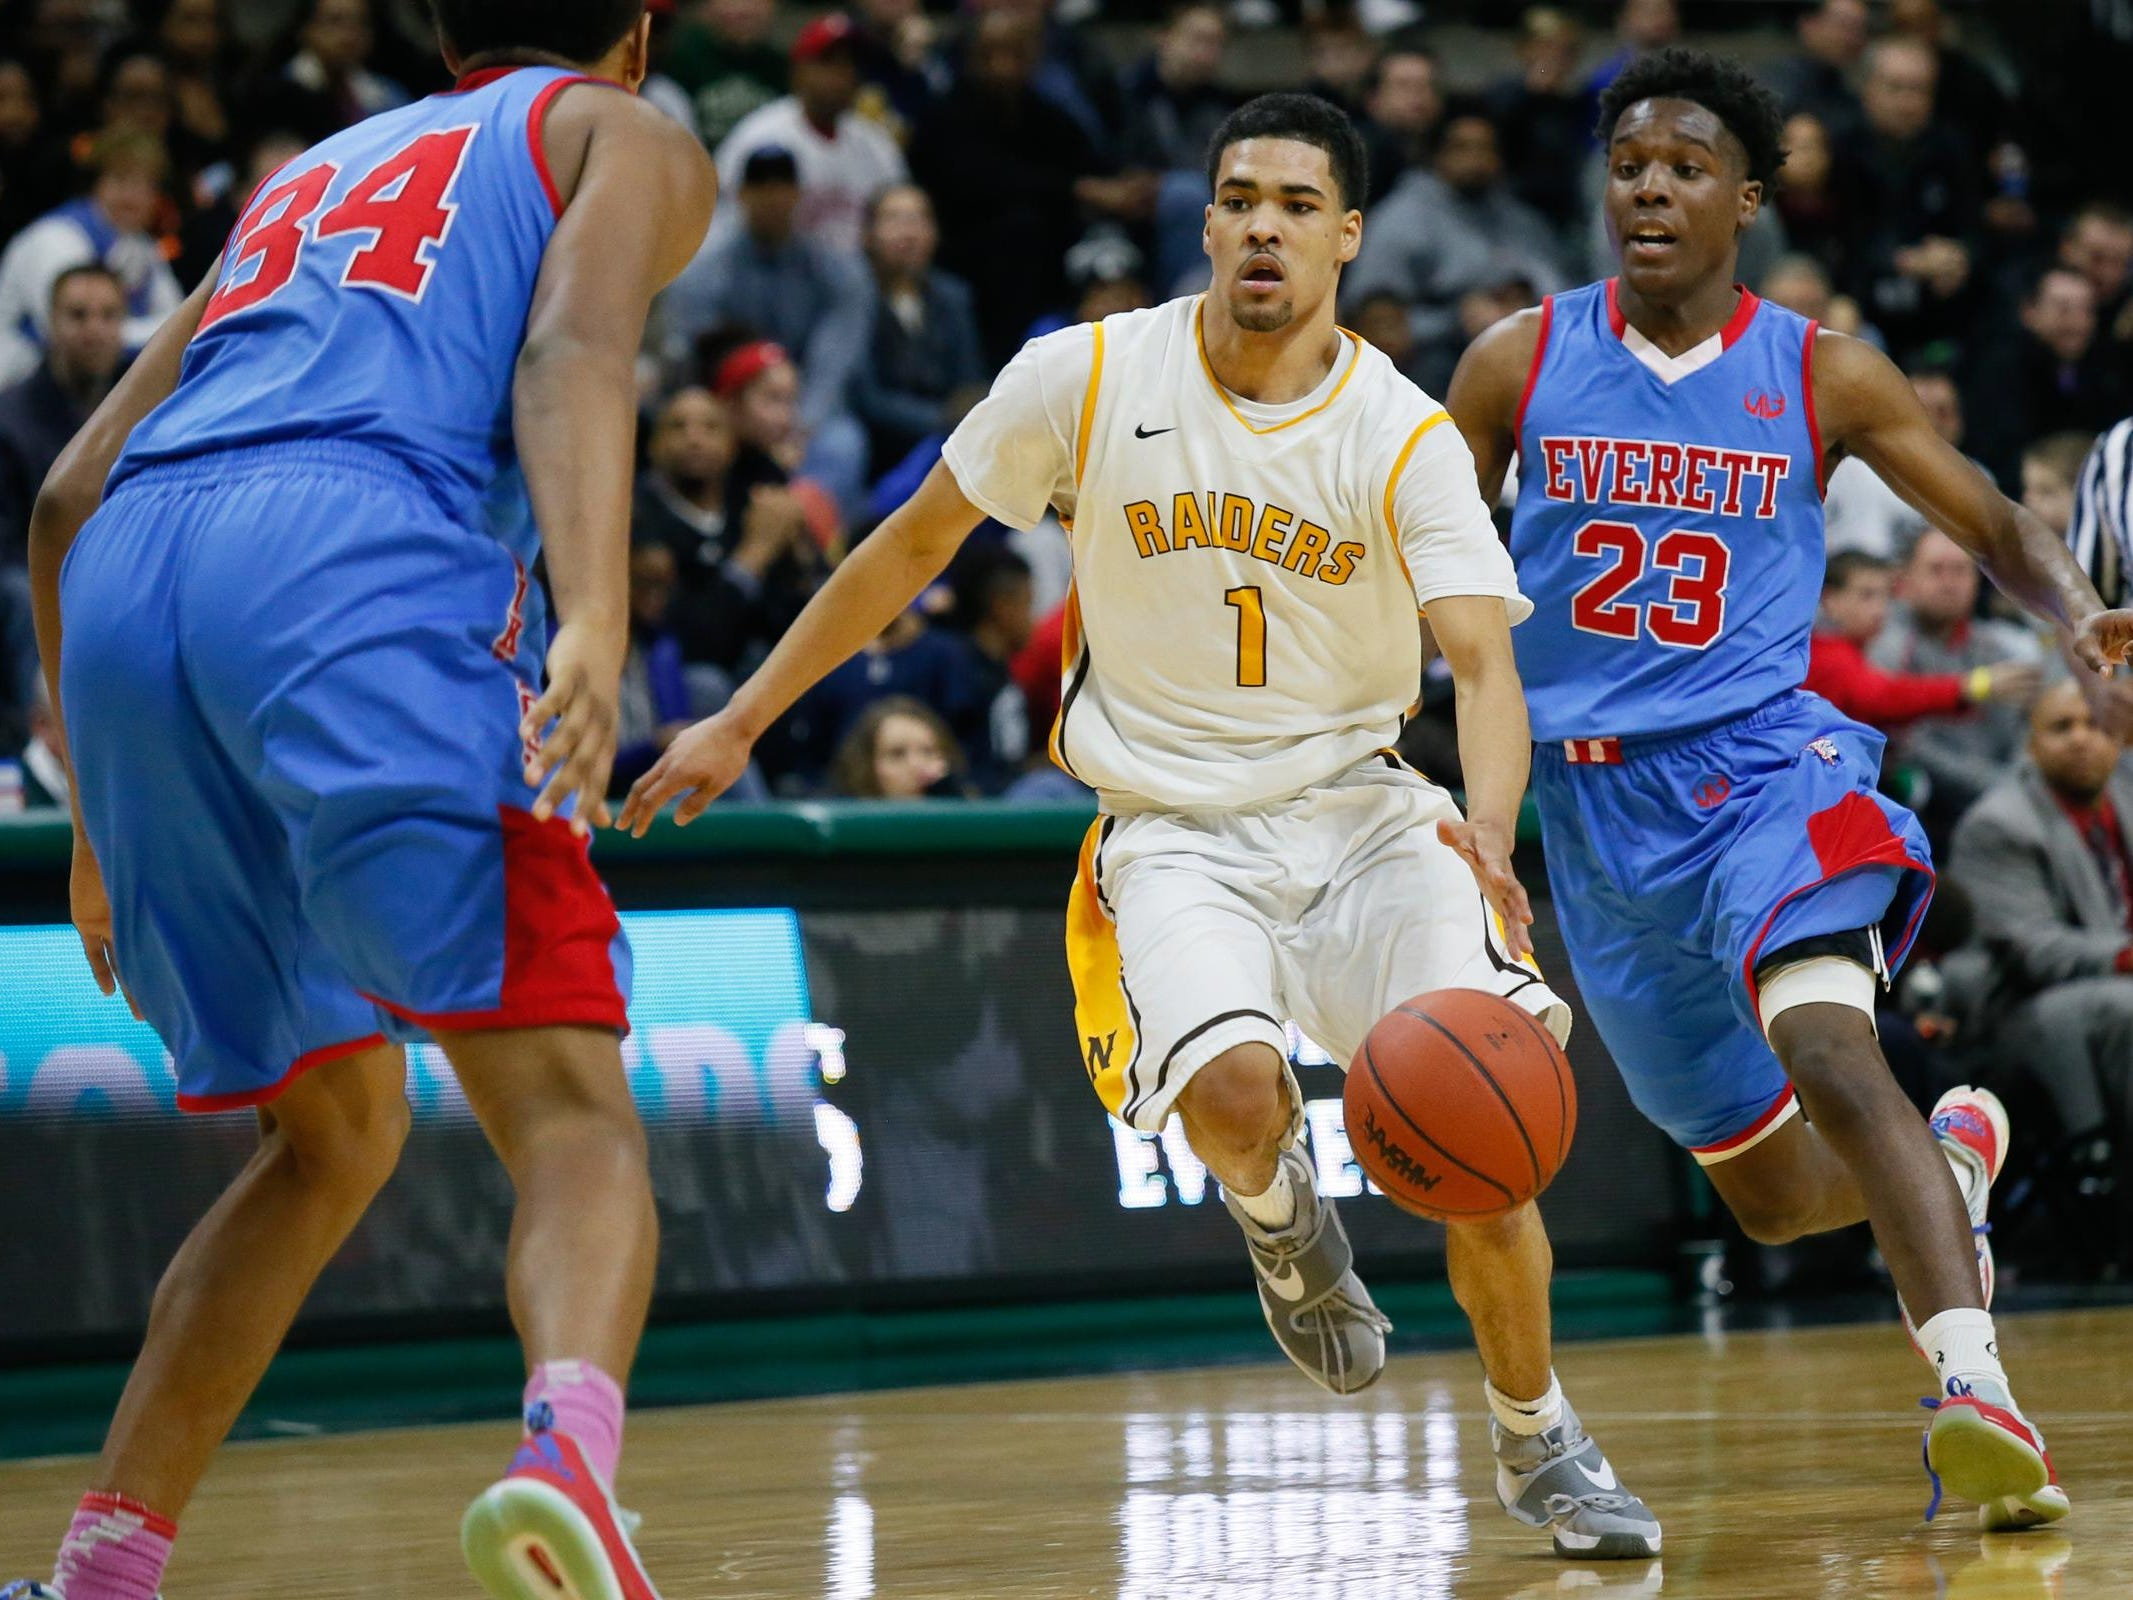 North Farmington's Billy Thomas has a fast break against Lansing Everett's Victor Edwards and Diego Robinson, during the MHSAA boys basketball Class A semifinals at the Breslin Center in East Lansing, Mich. on Friday, March 25, 2016.